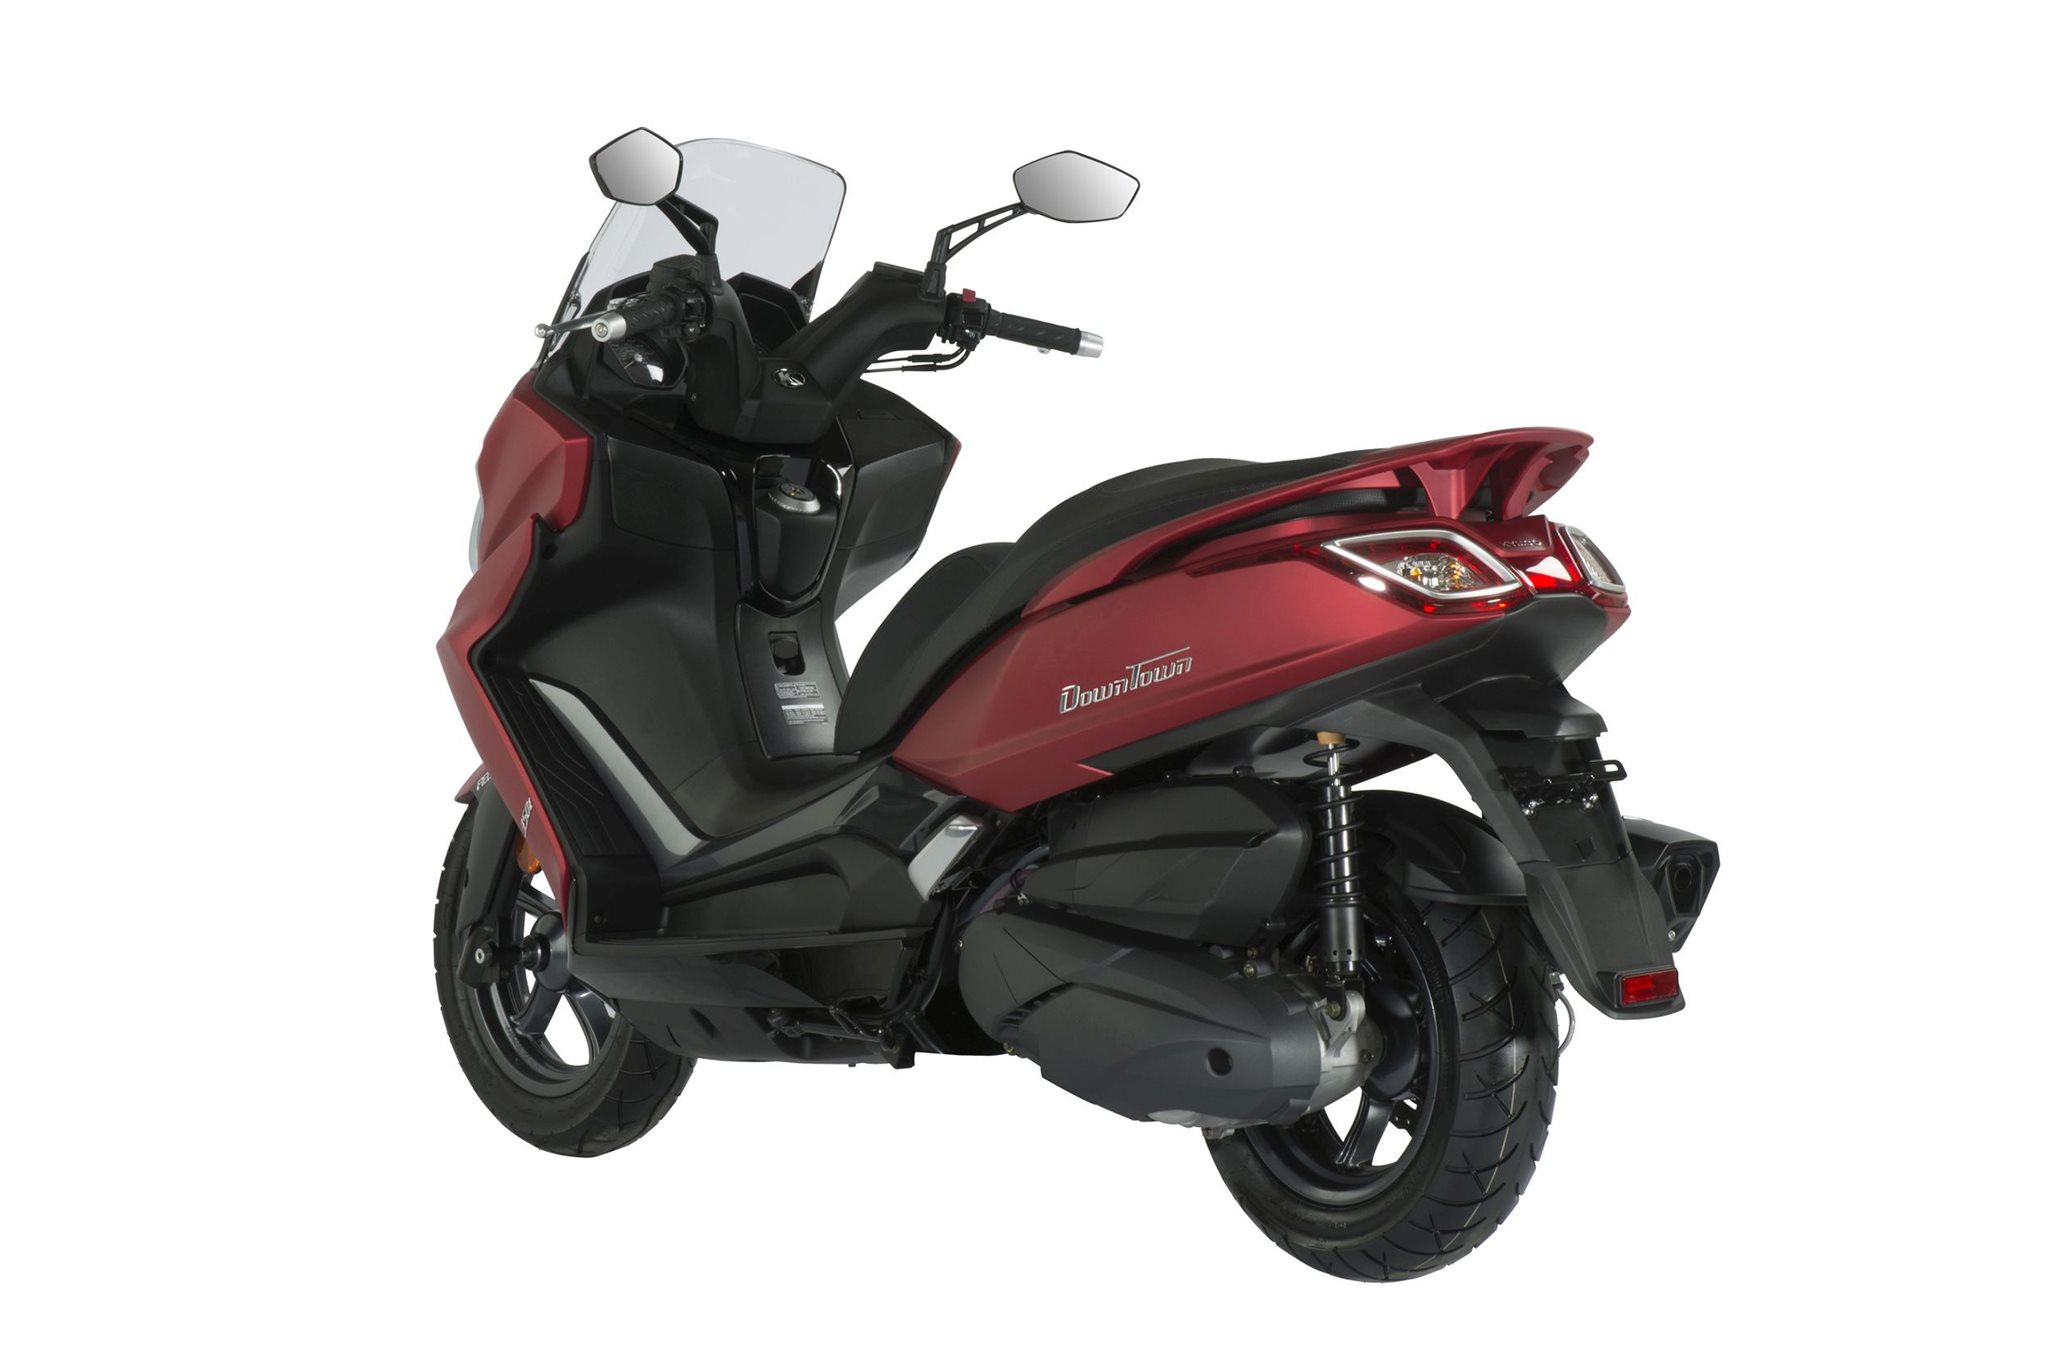 kymco new downtown 350i all technical data of the model. Black Bedroom Furniture Sets. Home Design Ideas